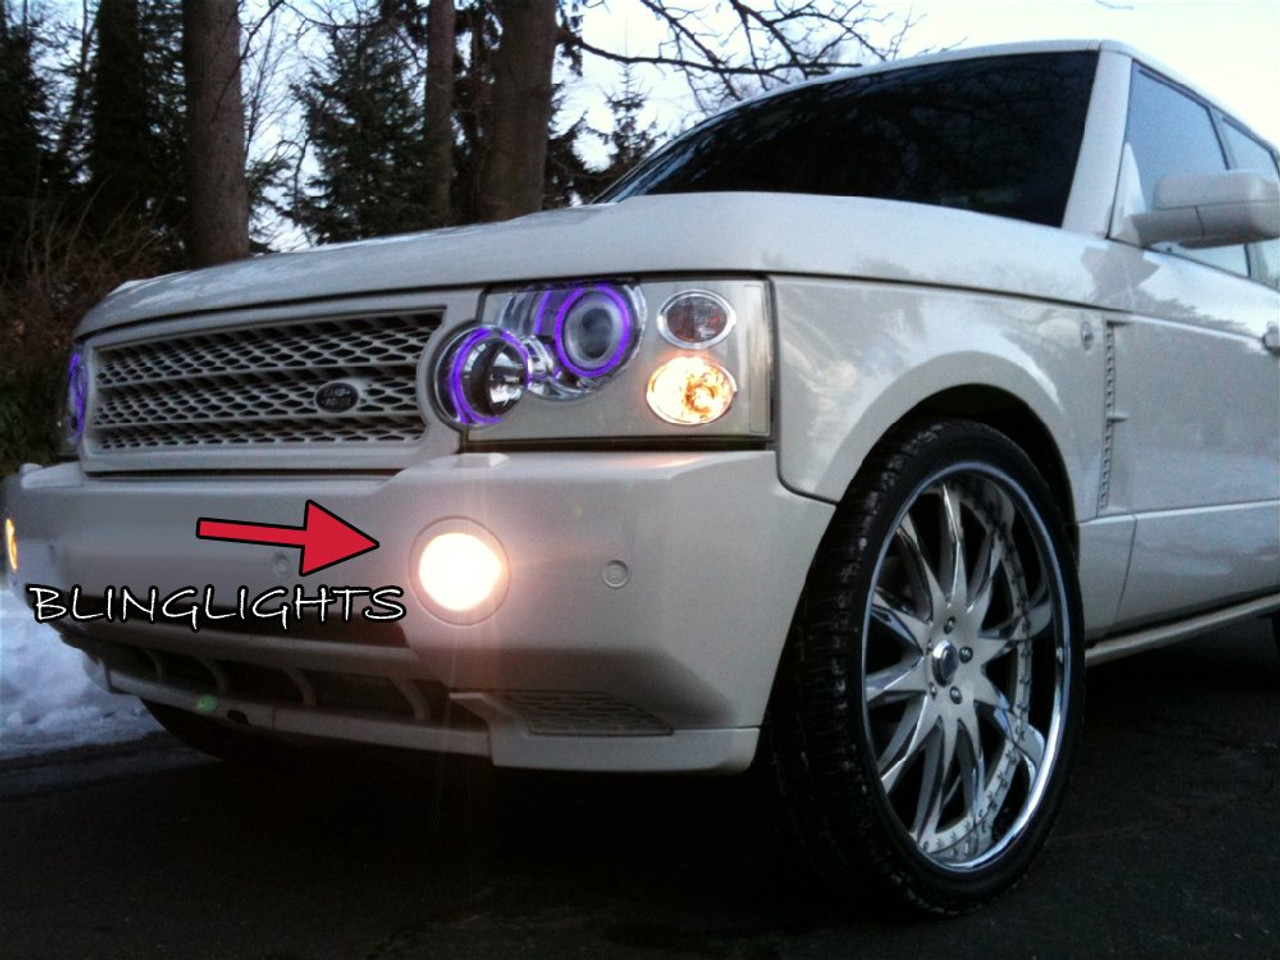 2003 2004 2005 2006 2007 2008 2009 Range Rover L322 Halo Fog Lamps Angel Eye Lights